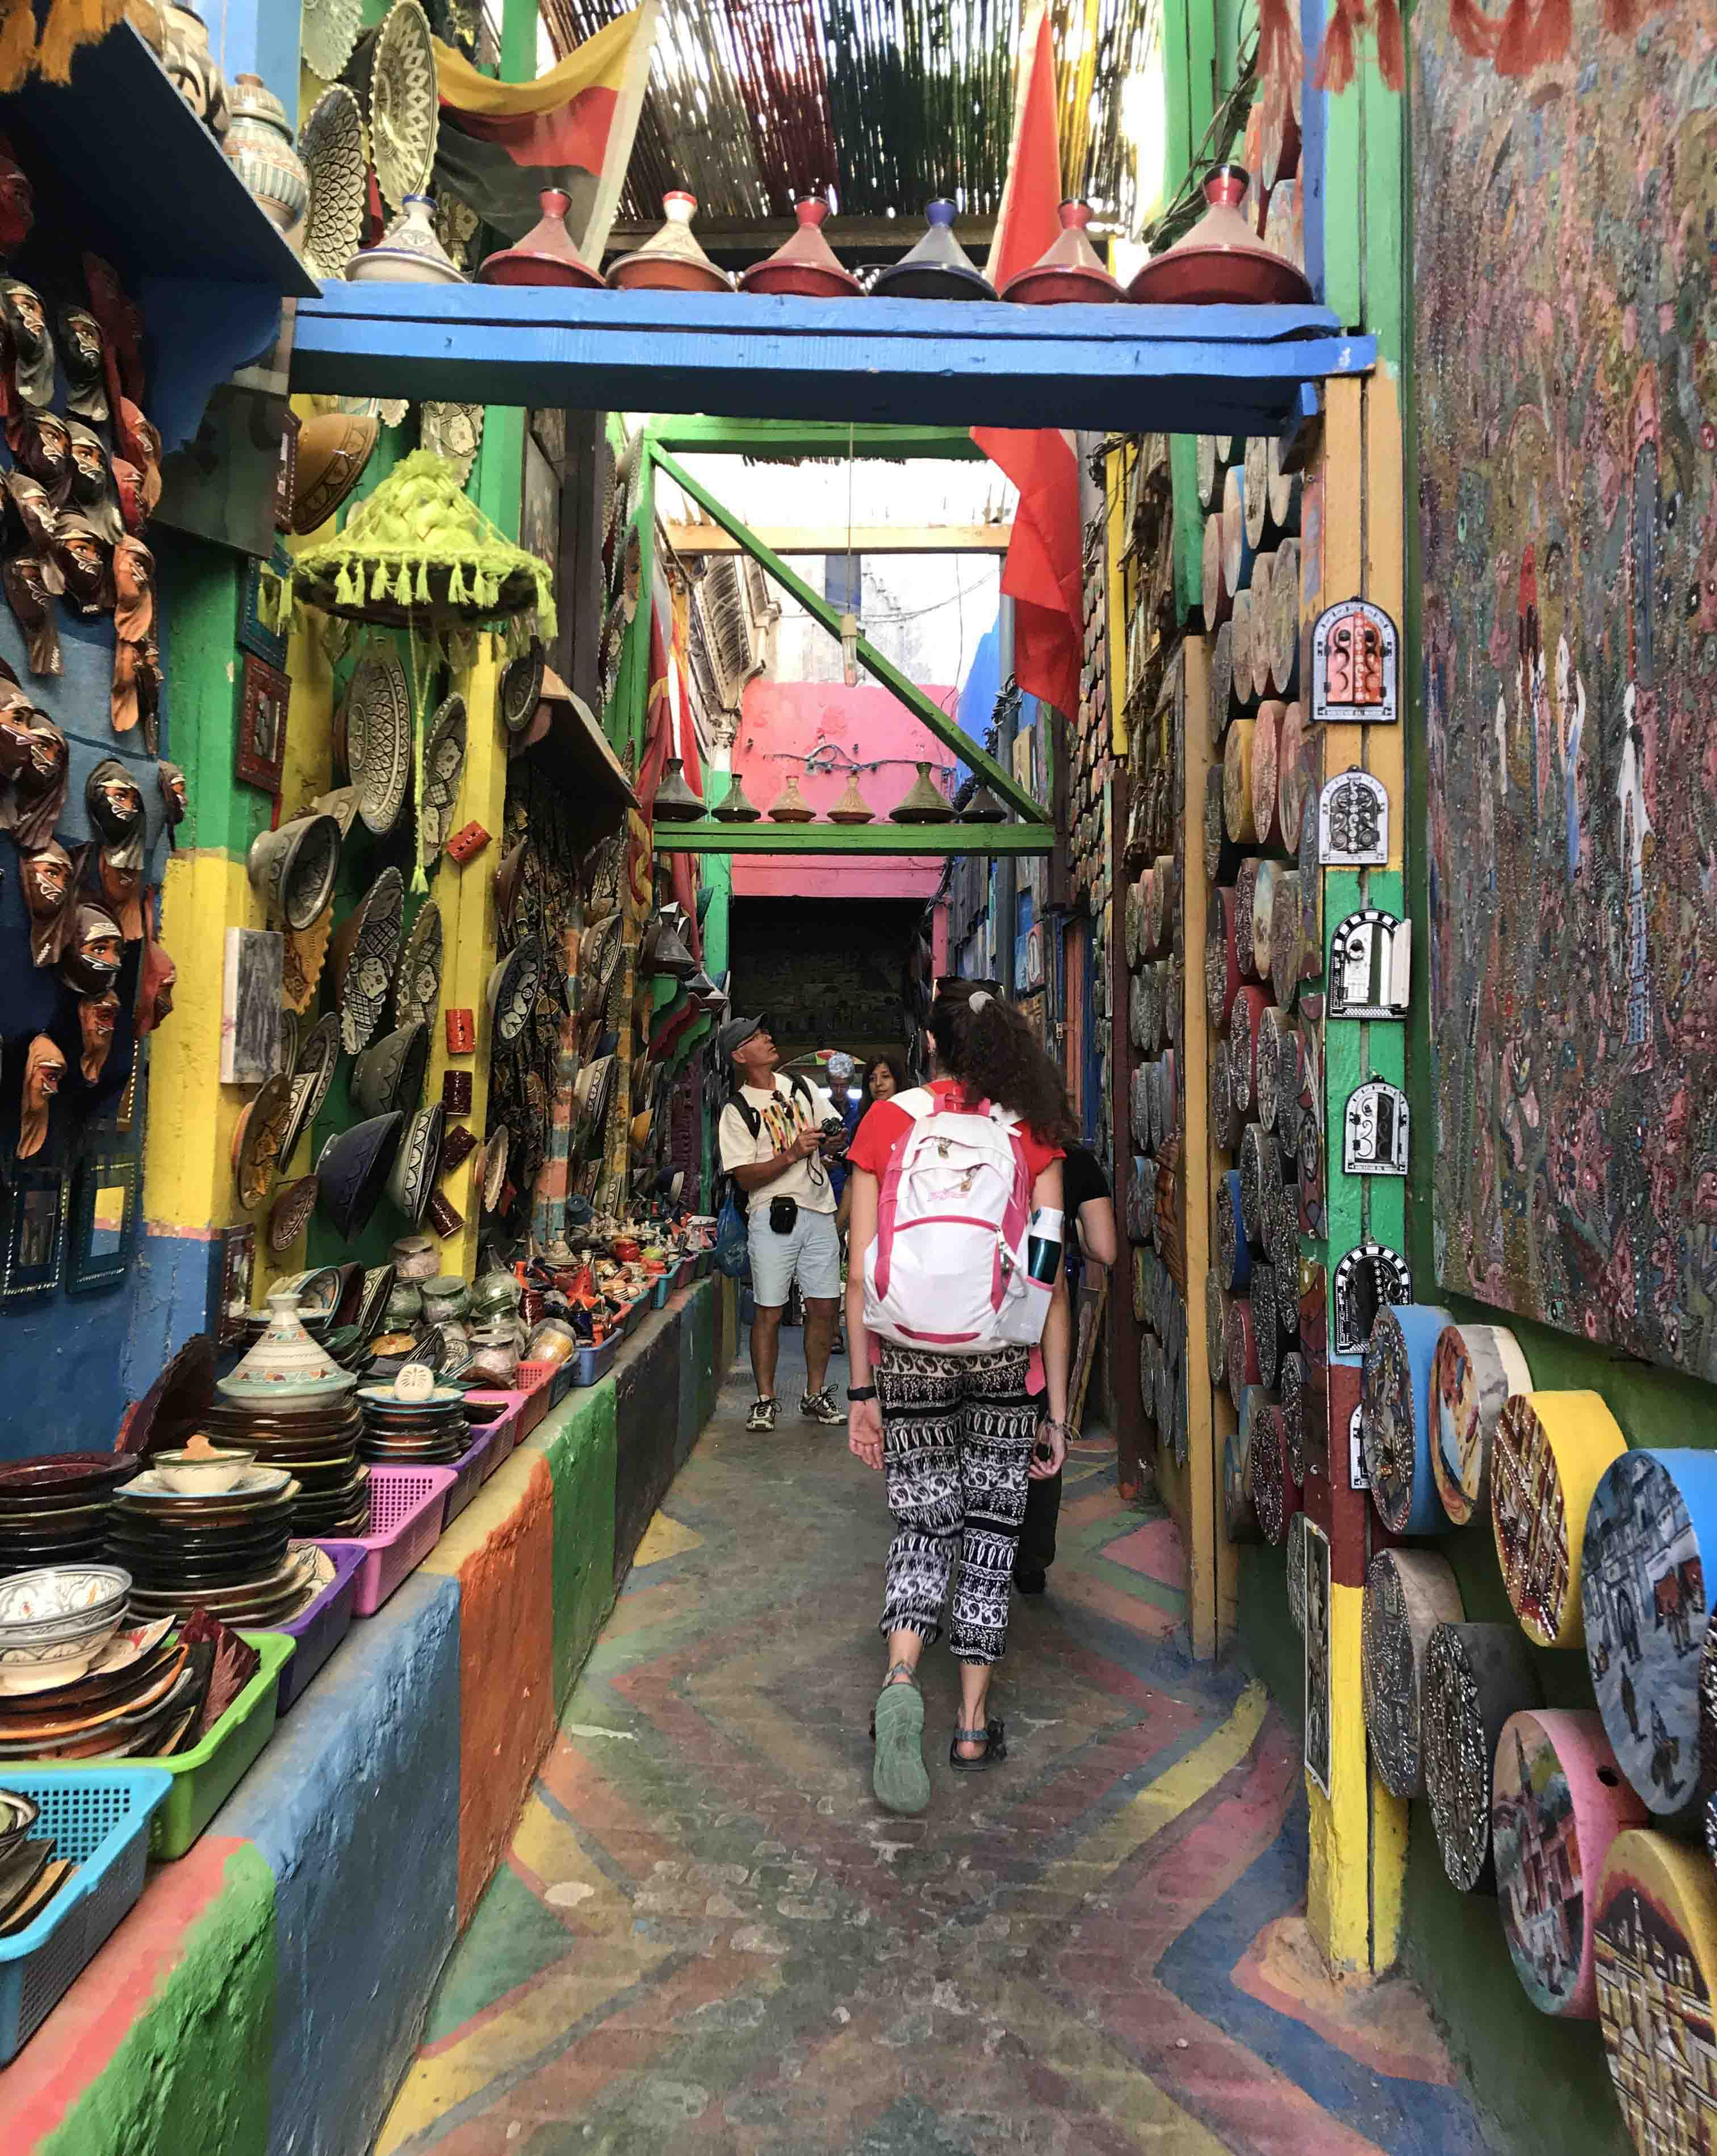 A colorful sidestreet we wandered down while finding our way out of the medina Saturday afternoon.